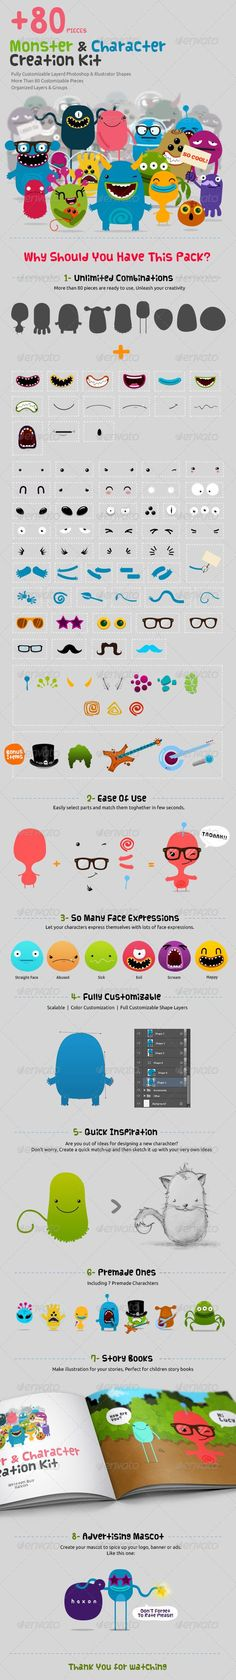 Lucky 07 Funny Vector Monster Character Creation Kits